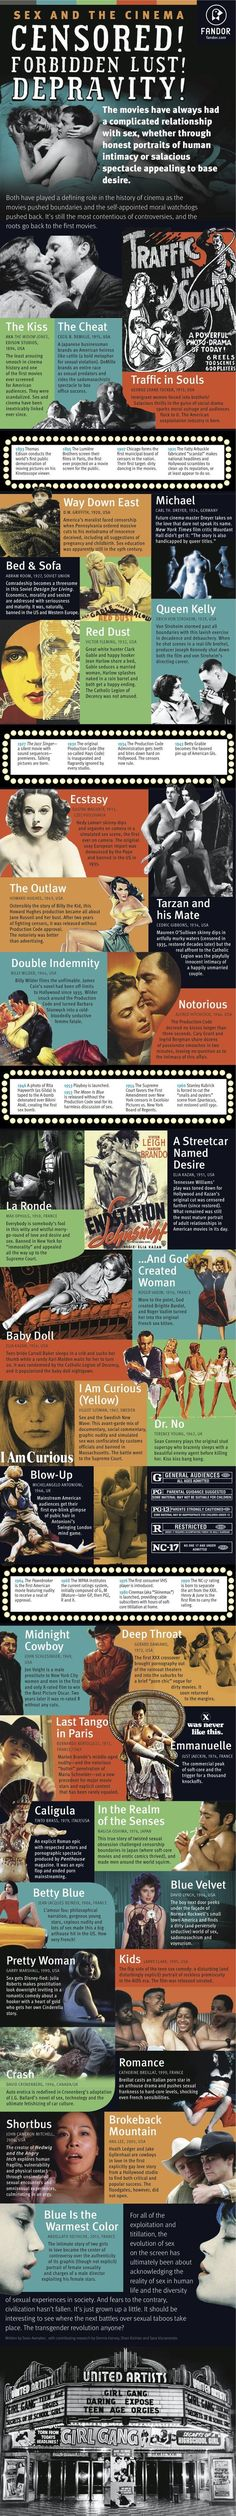 The Graphic History Of Sex On Screen   Co.Design   business + design